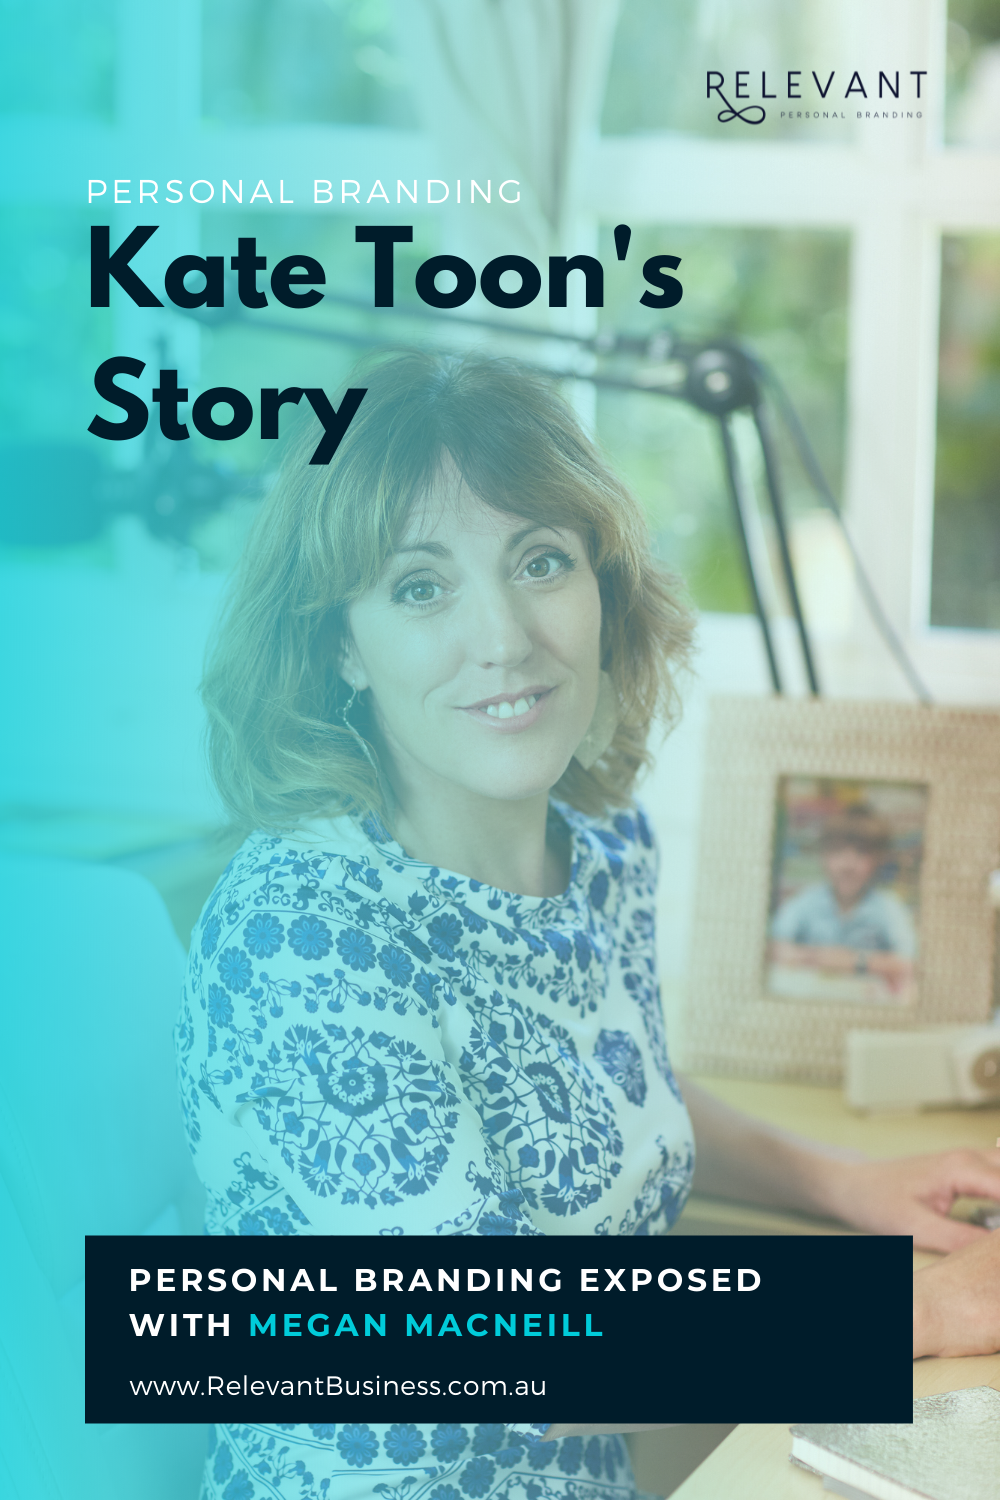 Kate Toon's Story